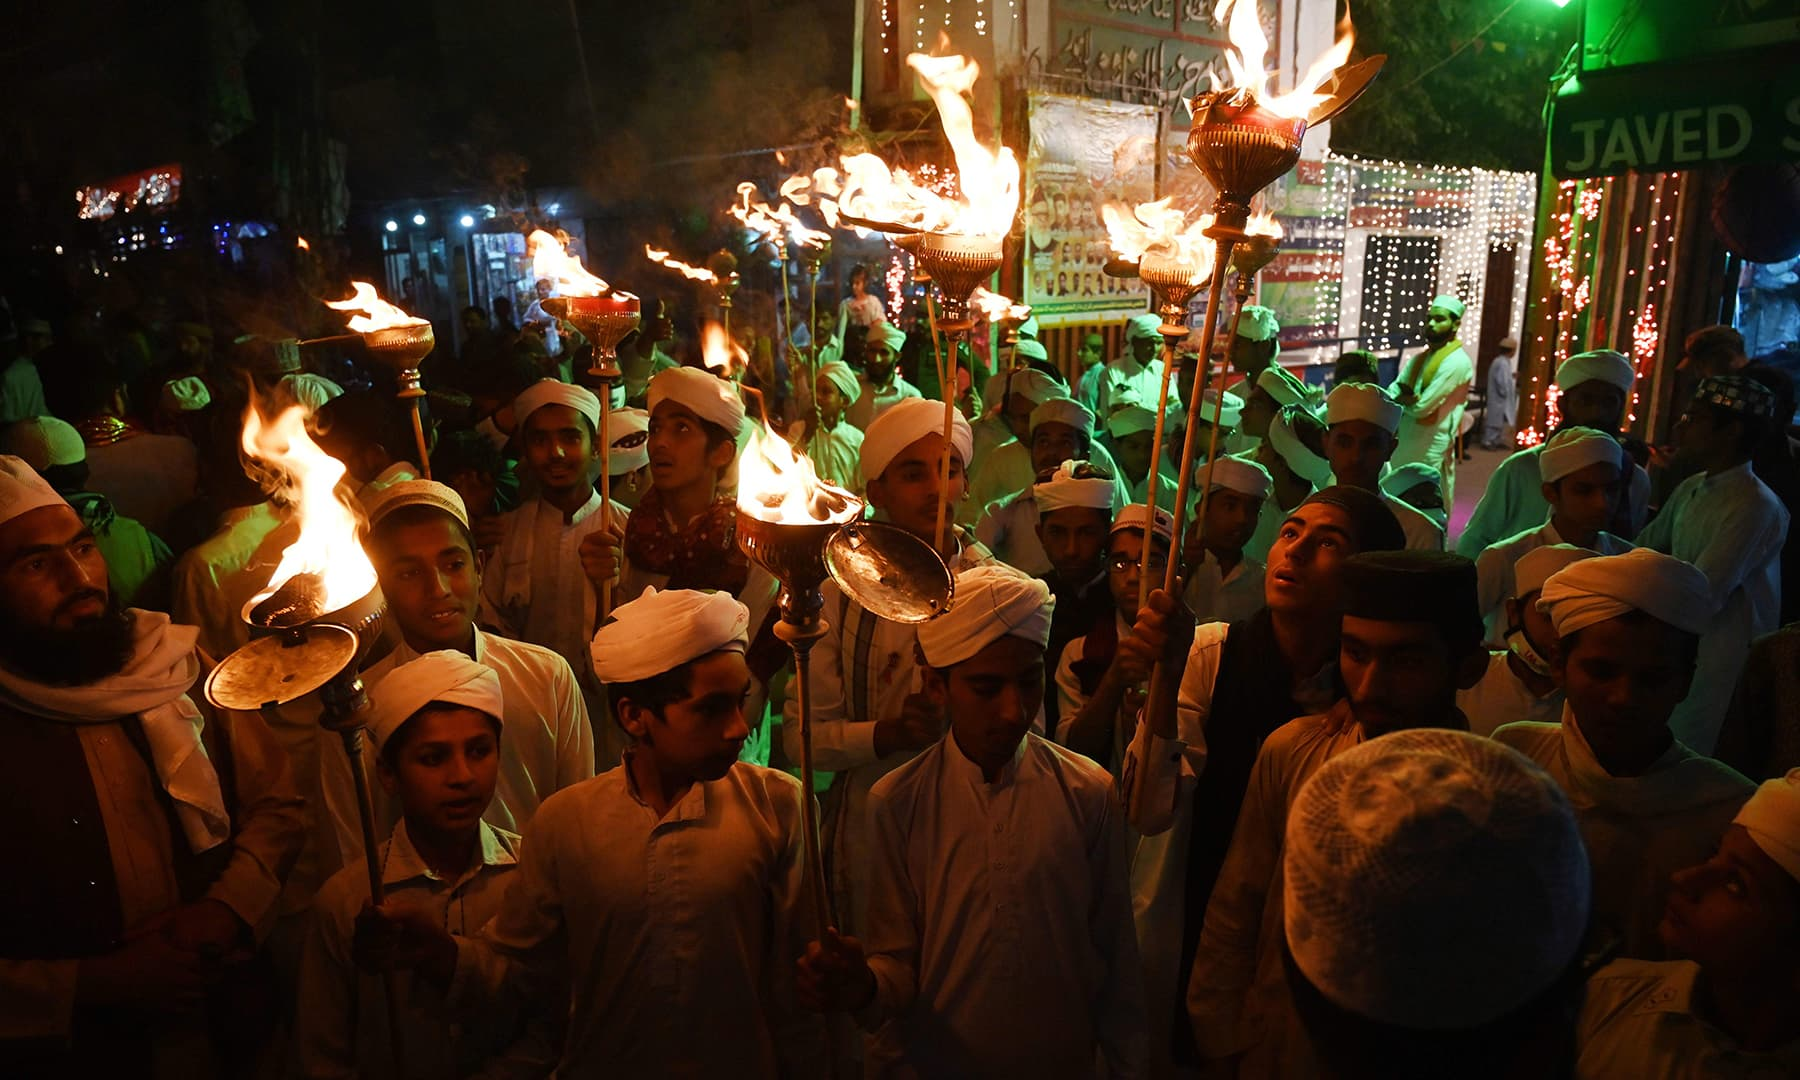 Participants hold torch lights during a rally ahead of celebrations for Eid-i-Miladun Nabi in Lahore on October 29. — AFP